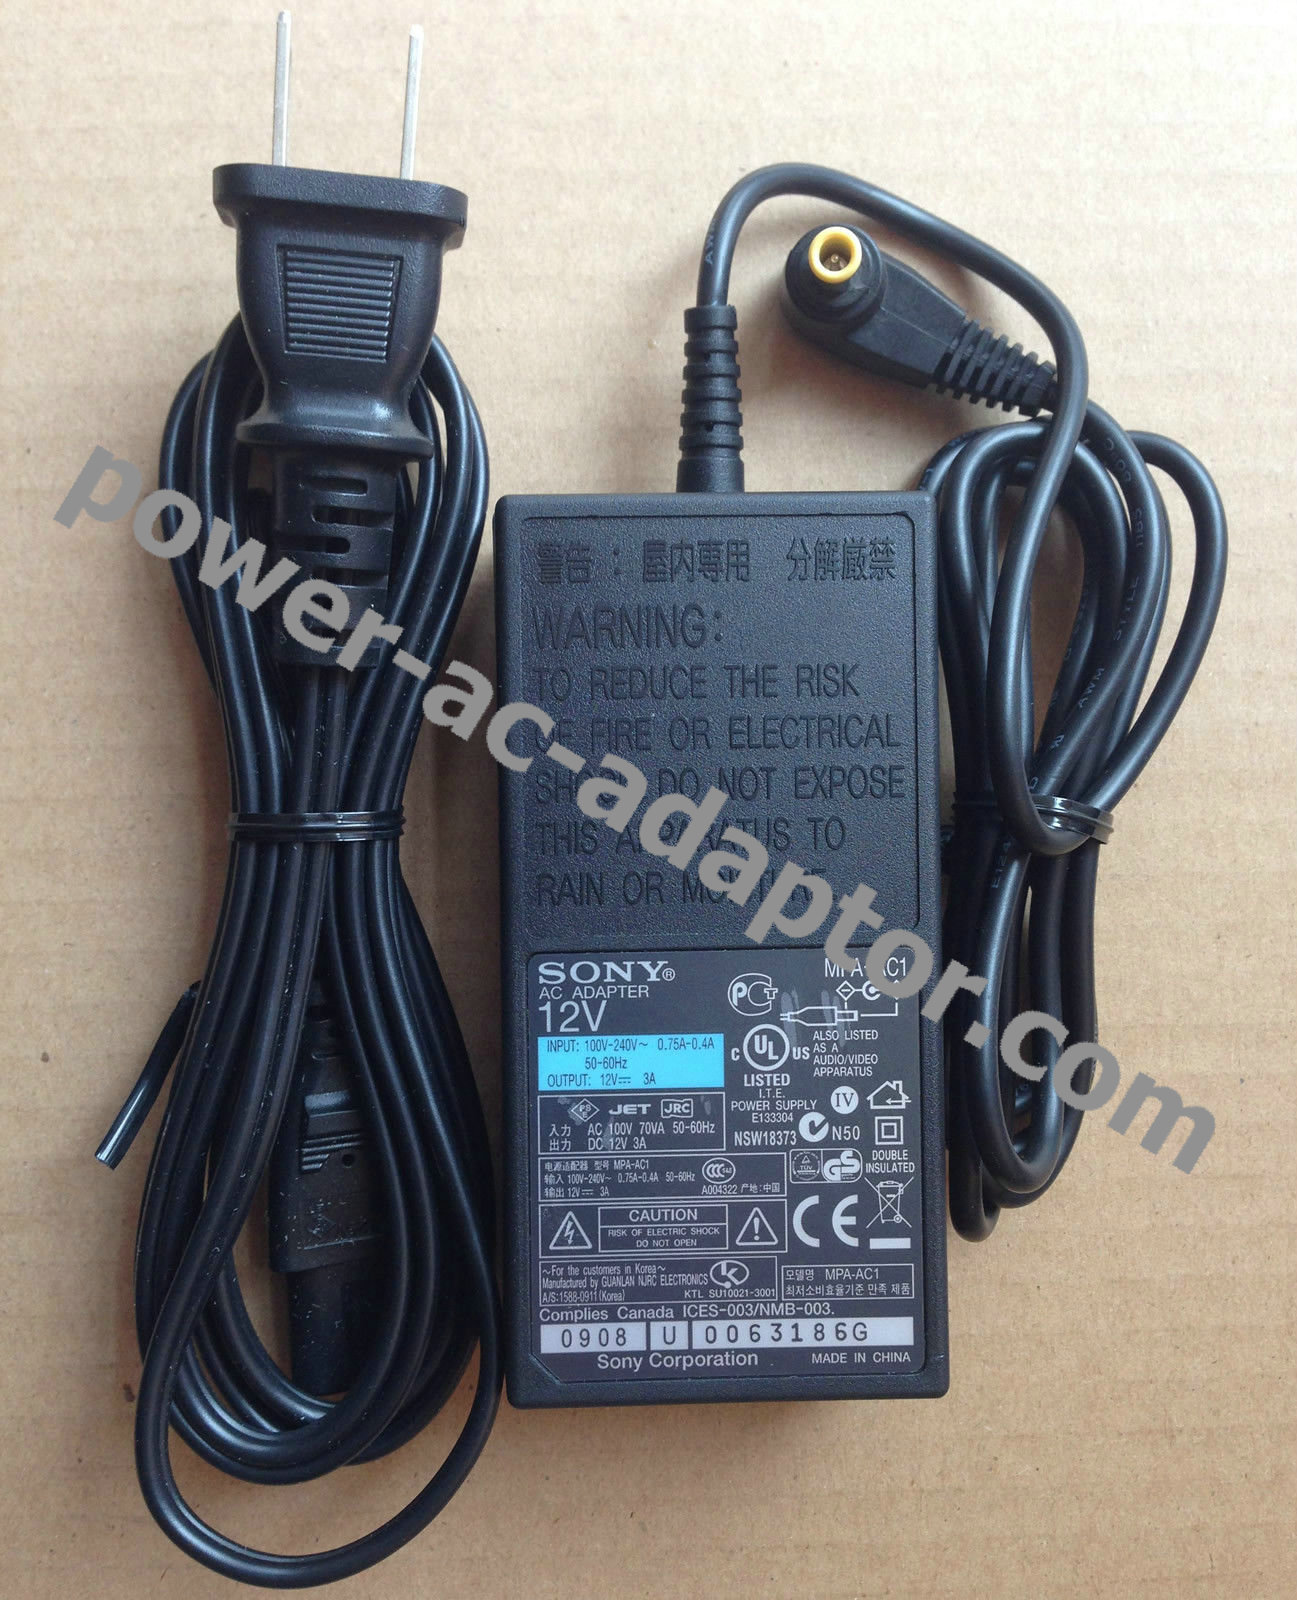 12V AC//DC Adapter For Sony MPA-AC1 MPAAC1 DRX-530UL EVI-D70 Camera Power Charger